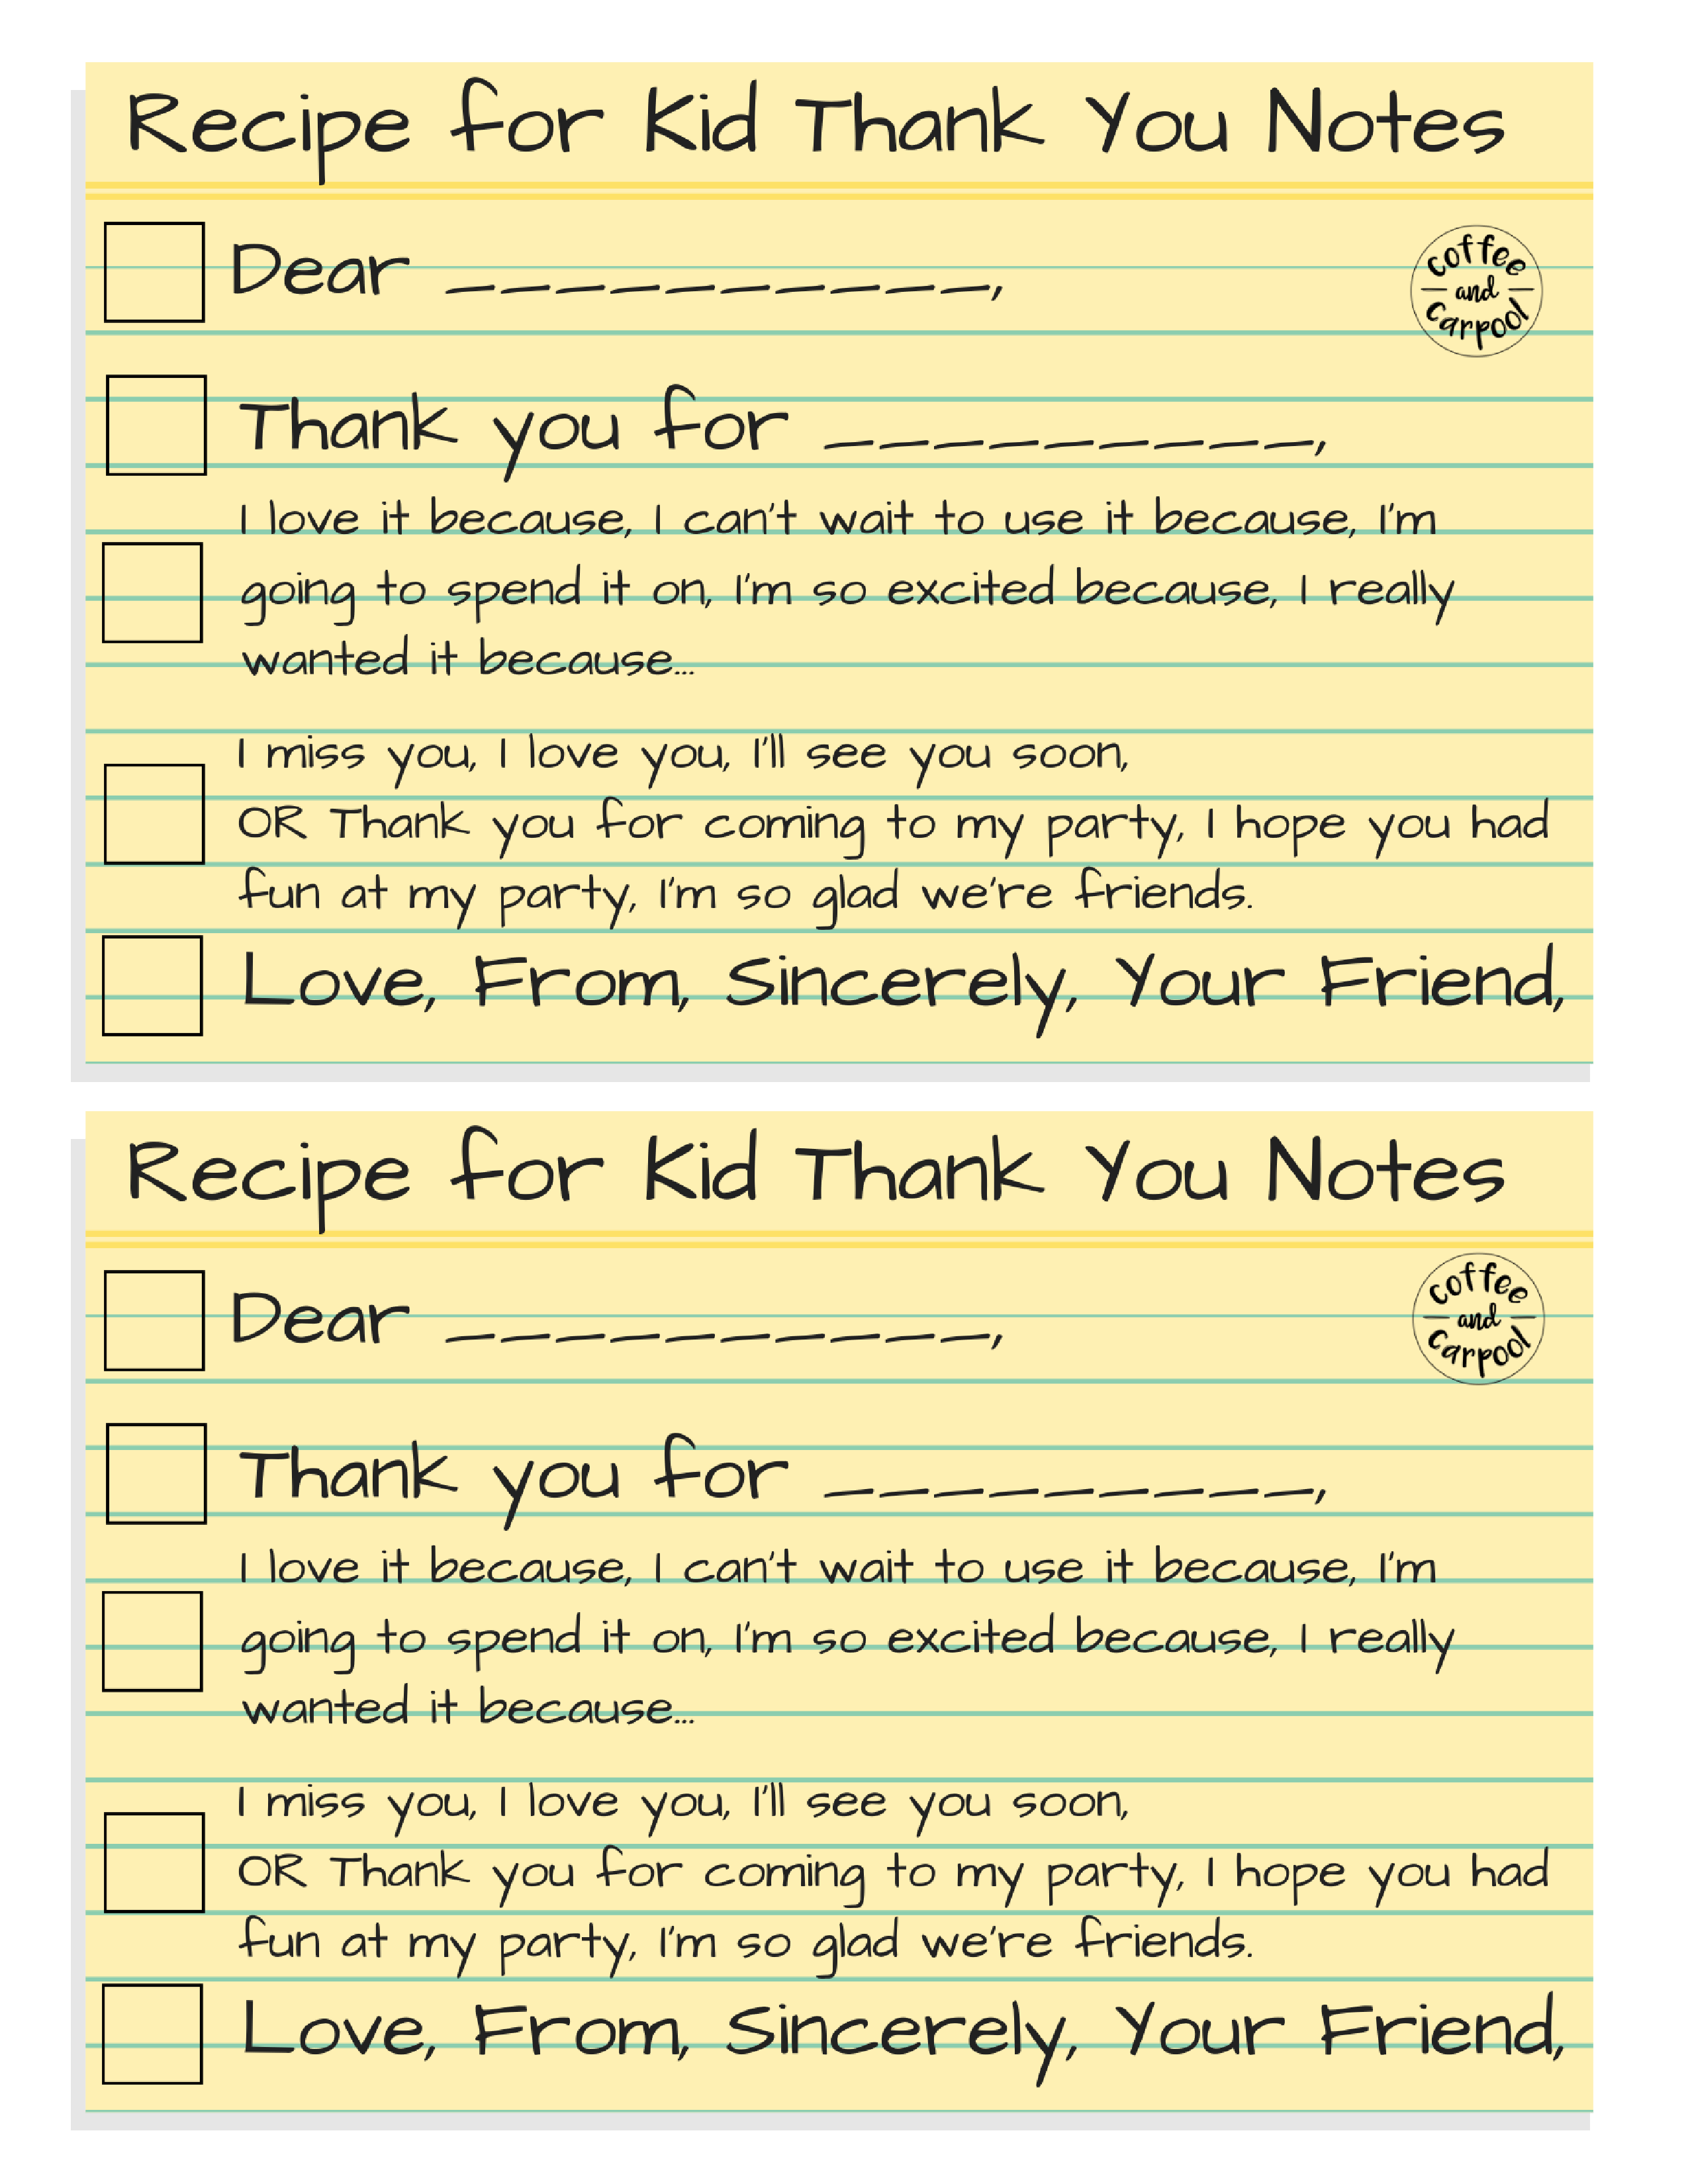 write a thoughtful note